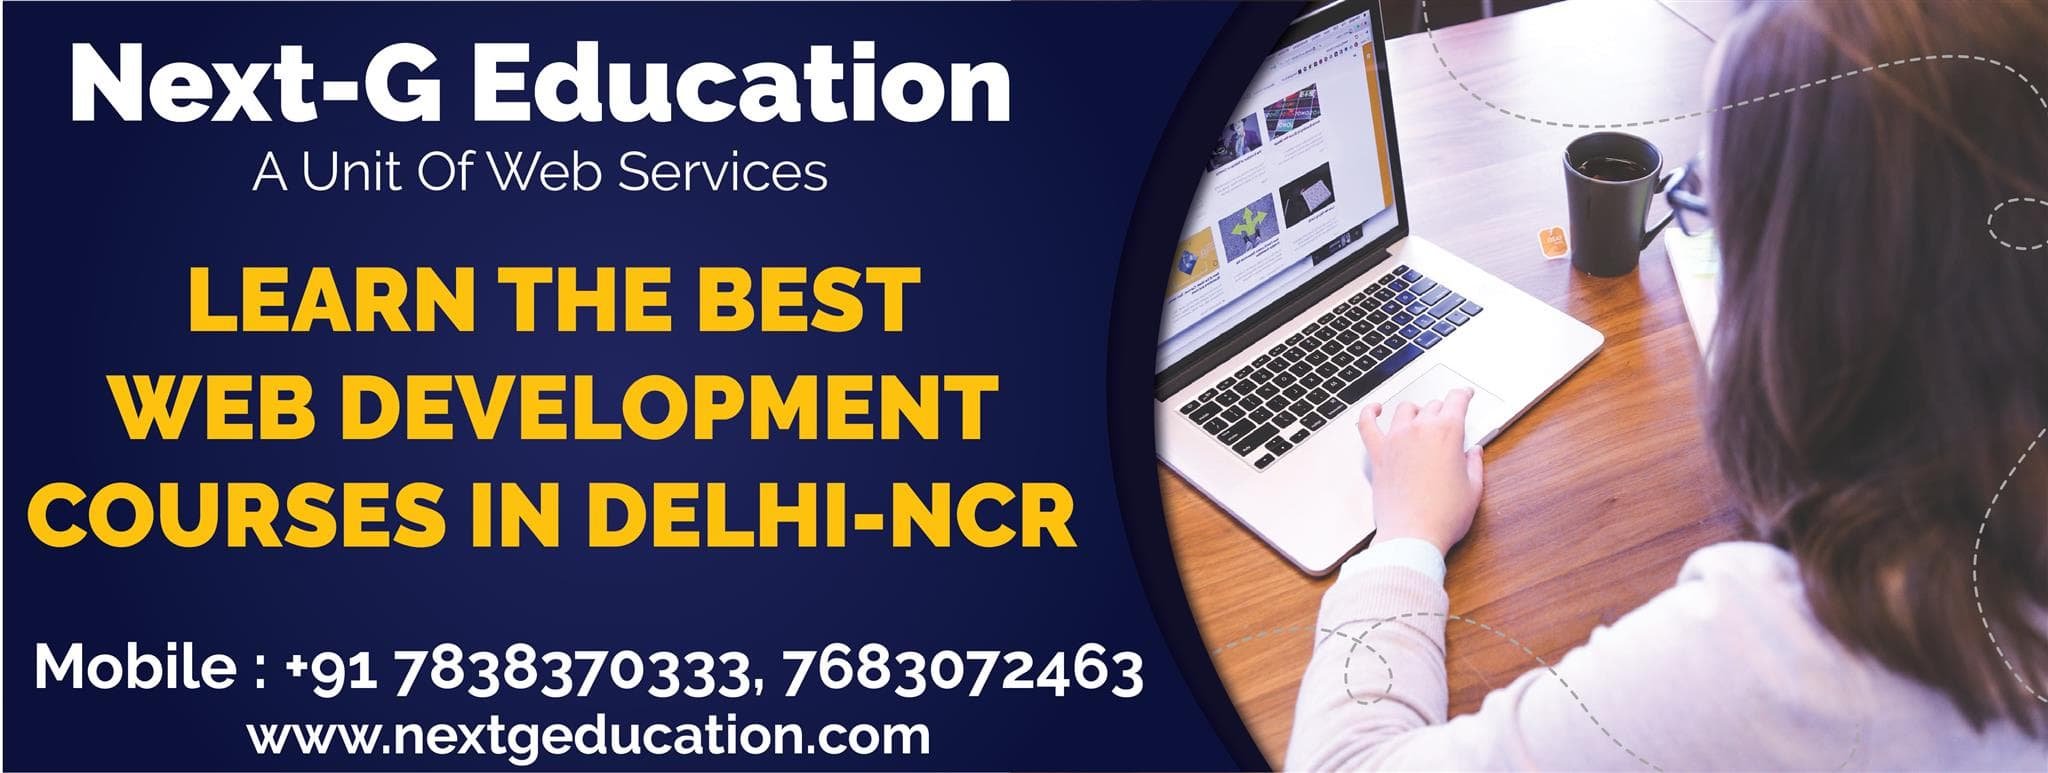 Learn the Best Web Development Courses in Delhi-NCR